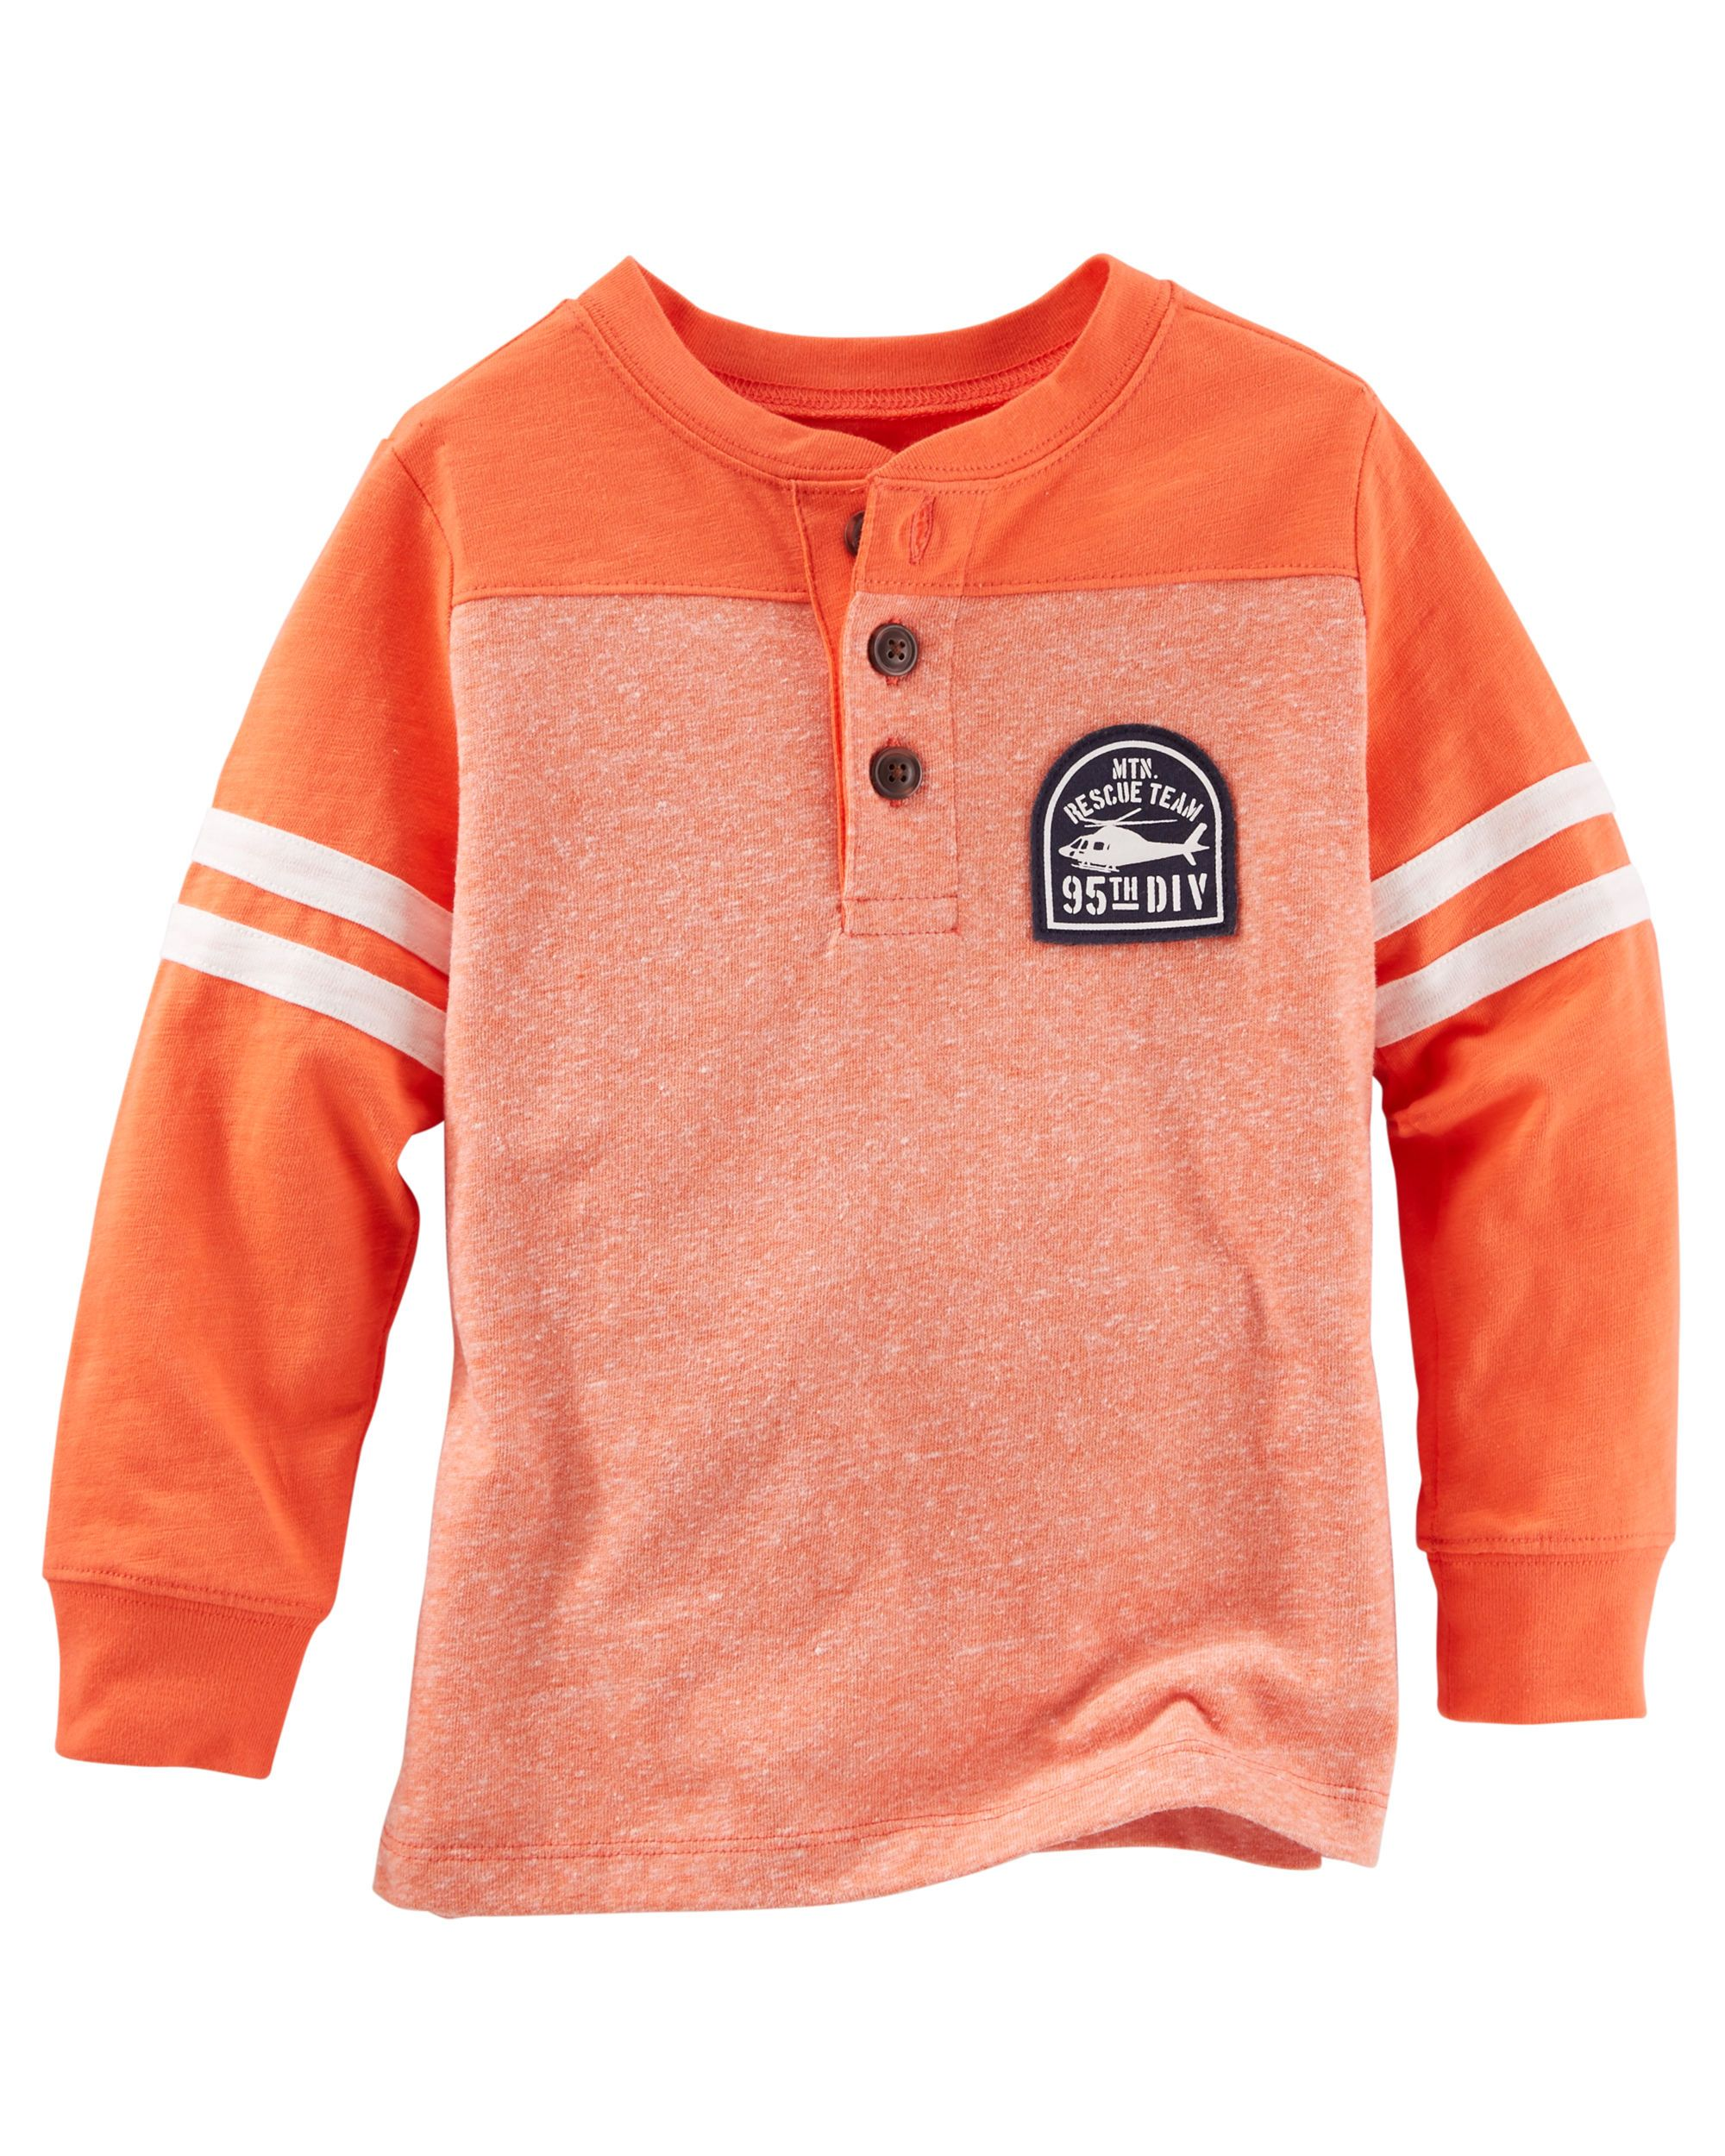 516b04e43 Toddler Boy Colorblock Henley from OshKosh B'gosh. Shop clothing &  accessories from a trusted name in kids, toddlers, and baby clothes.